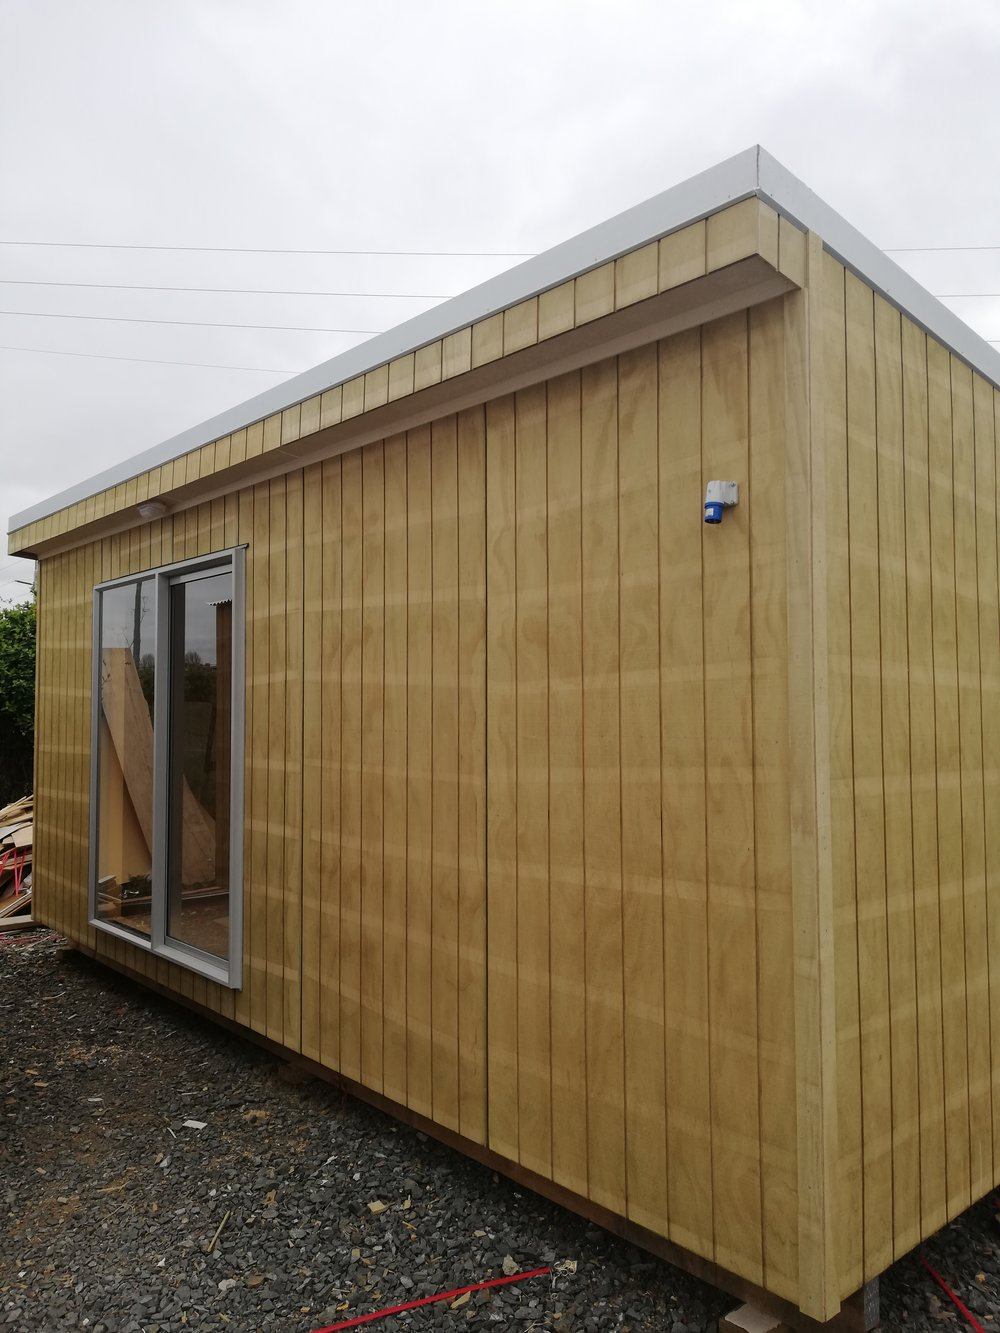 Deluxe Cabin$12999 incl GST - At 6m x 2.7m our deluxe cabin provides ample space for entertaining or great as a site office for your business.